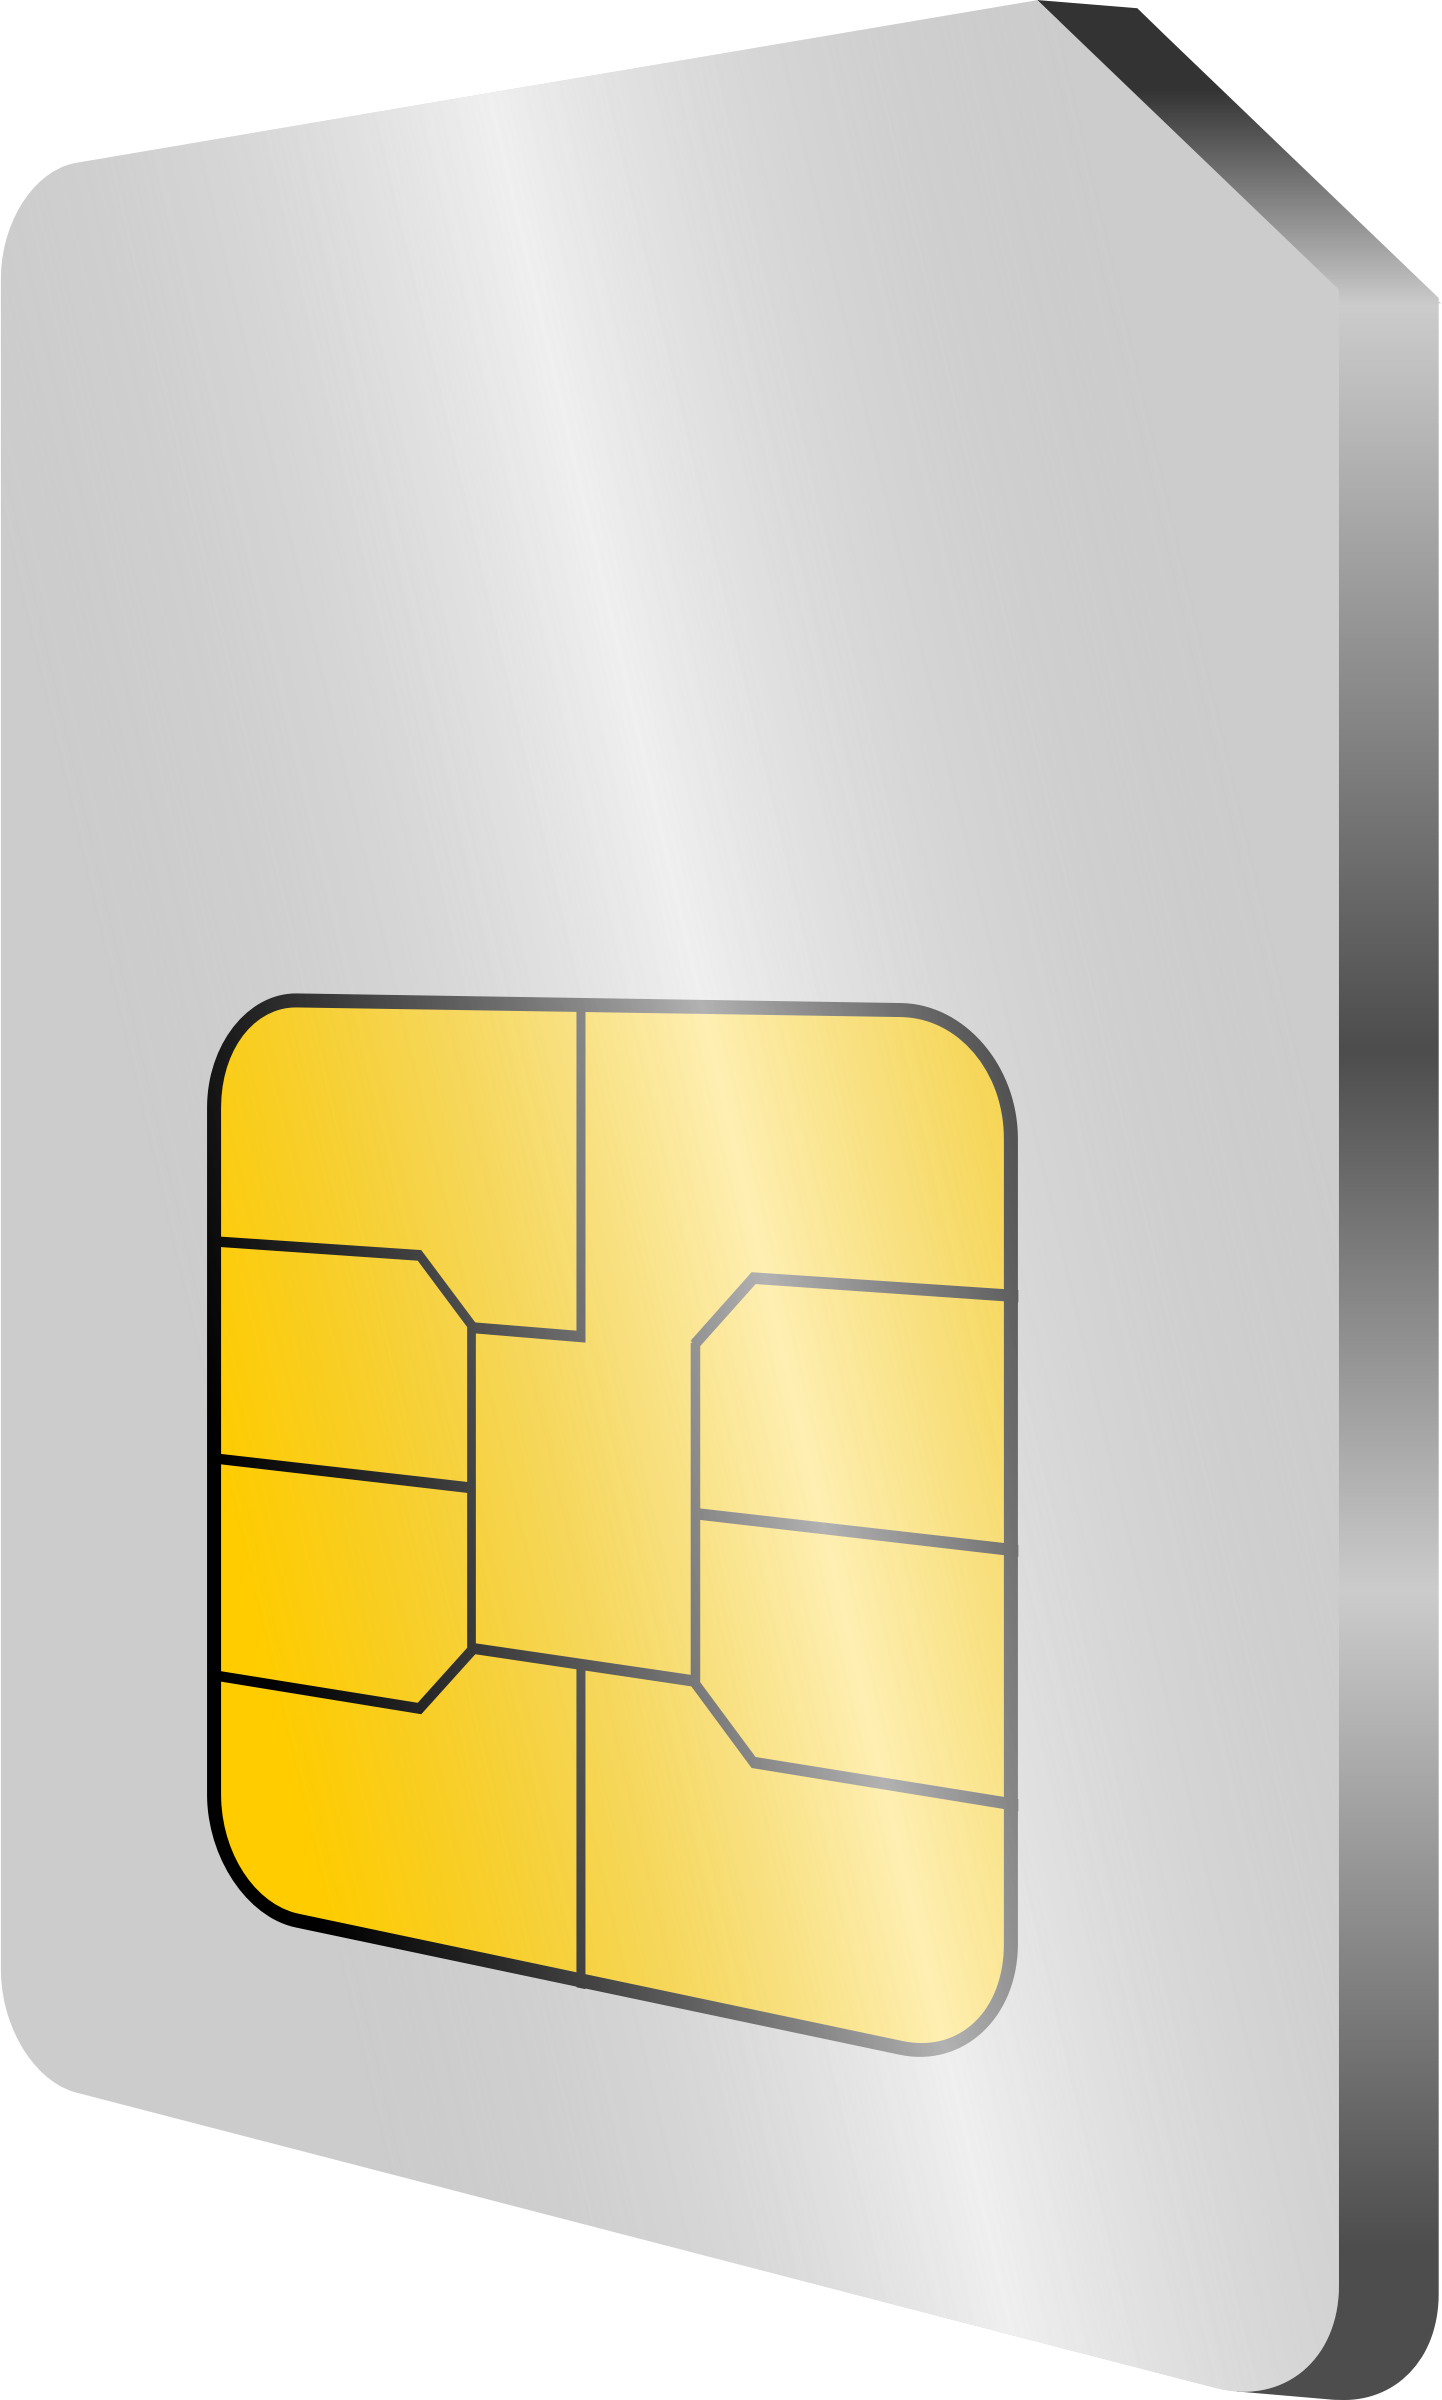 Sim cards clipart png library stock Pin by Hopeless on Clipart | Iphone sim card, Sims, Cards png library stock